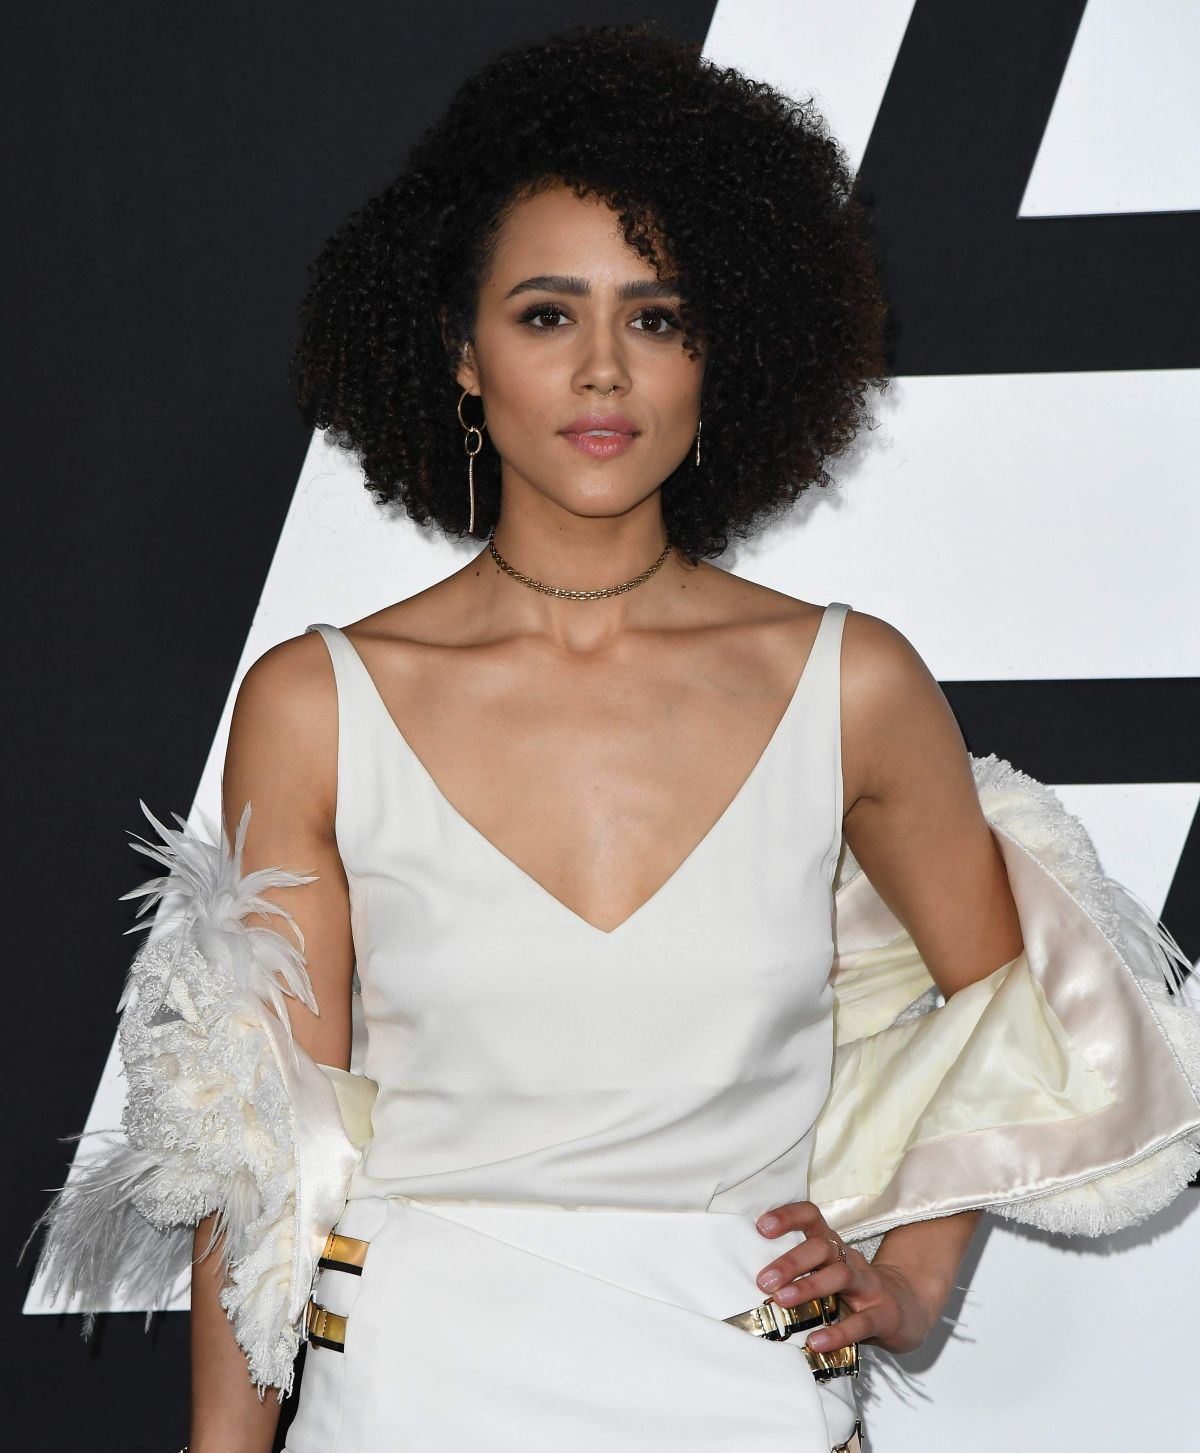 NATHALIE EMMANUEL at The Fate of the Furious Premiere in New York 04/08/2017